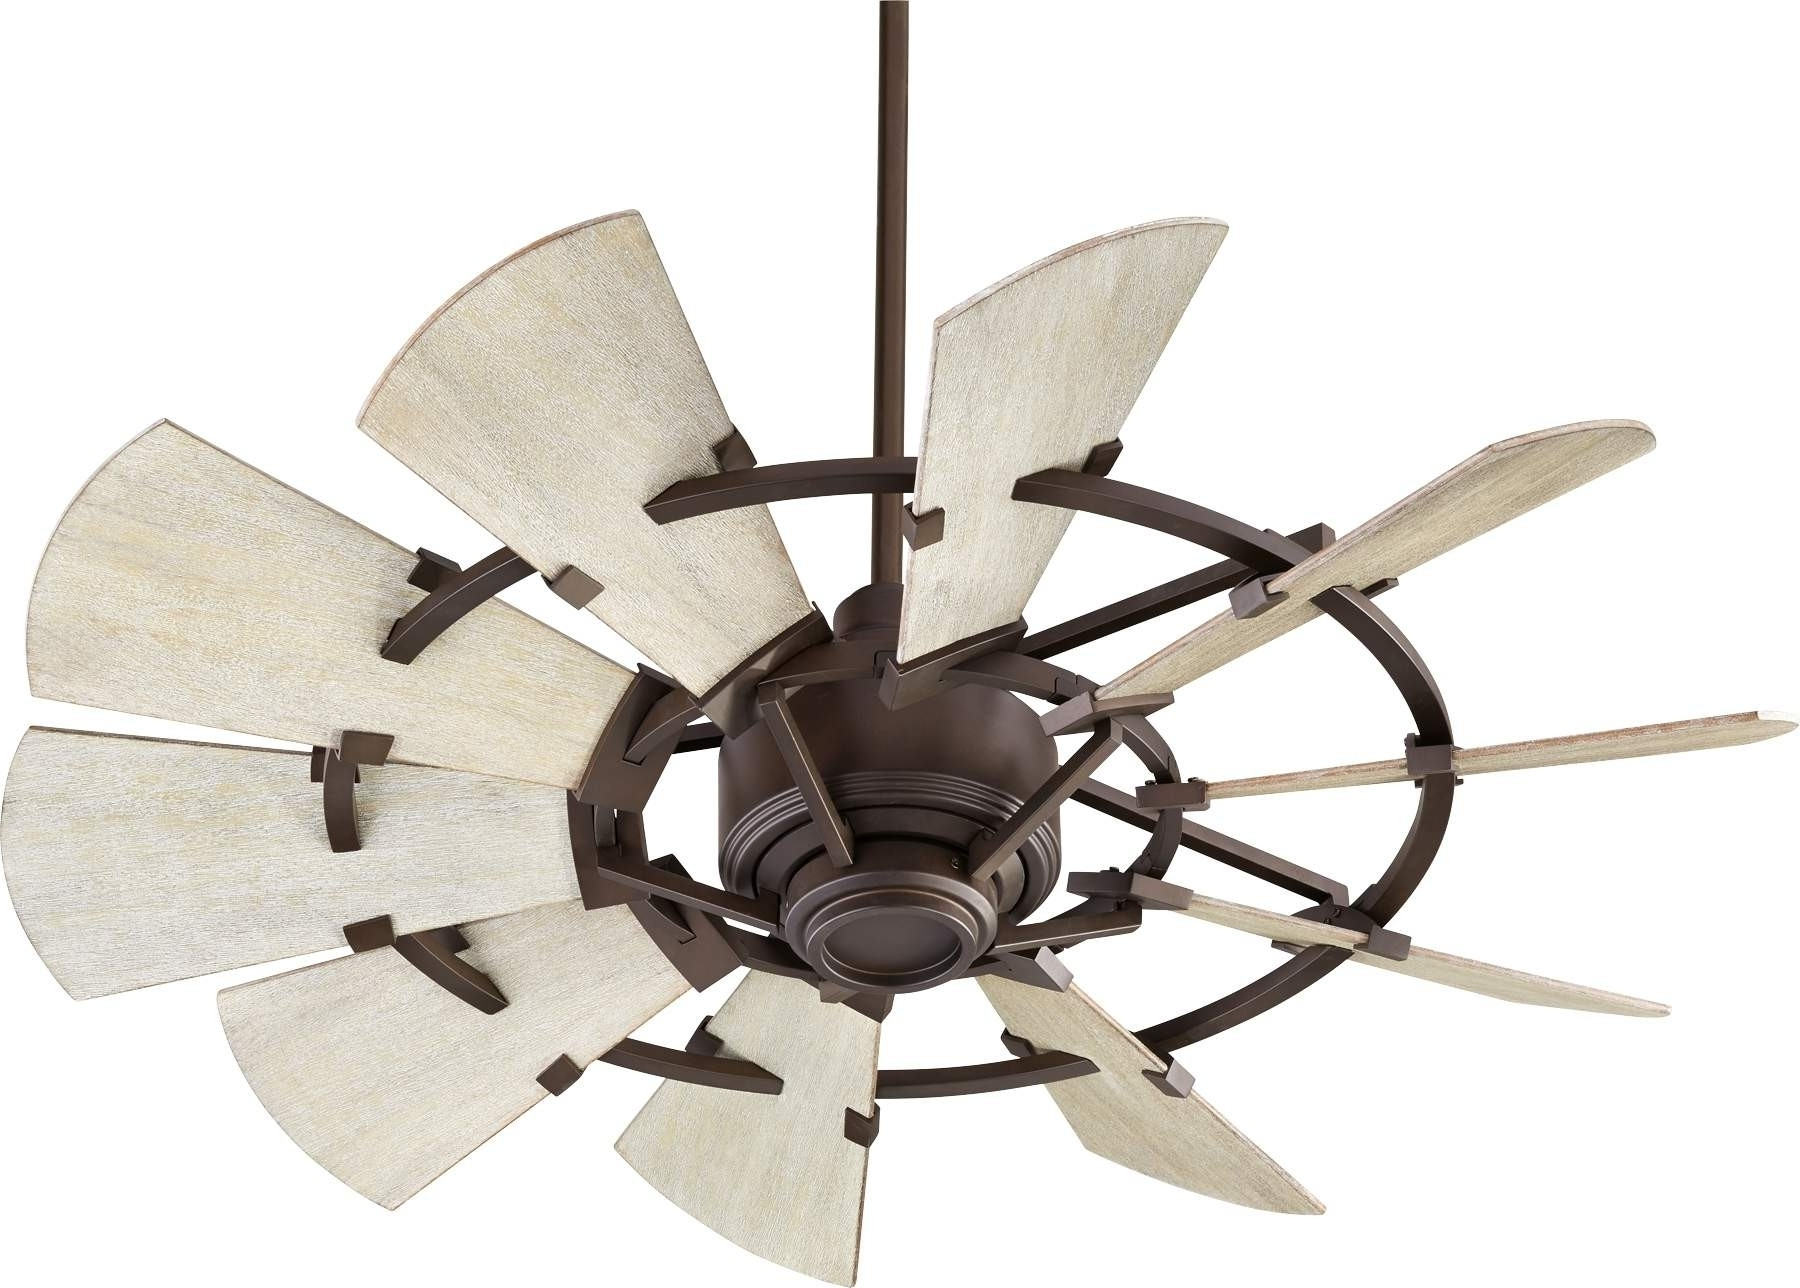 Quorum Windmill Ceiling Fan Model 194410 86 In Oiled Bronze In Most Recent Outdoor Windmill Ceiling Fans With Light (View 3 of 20)